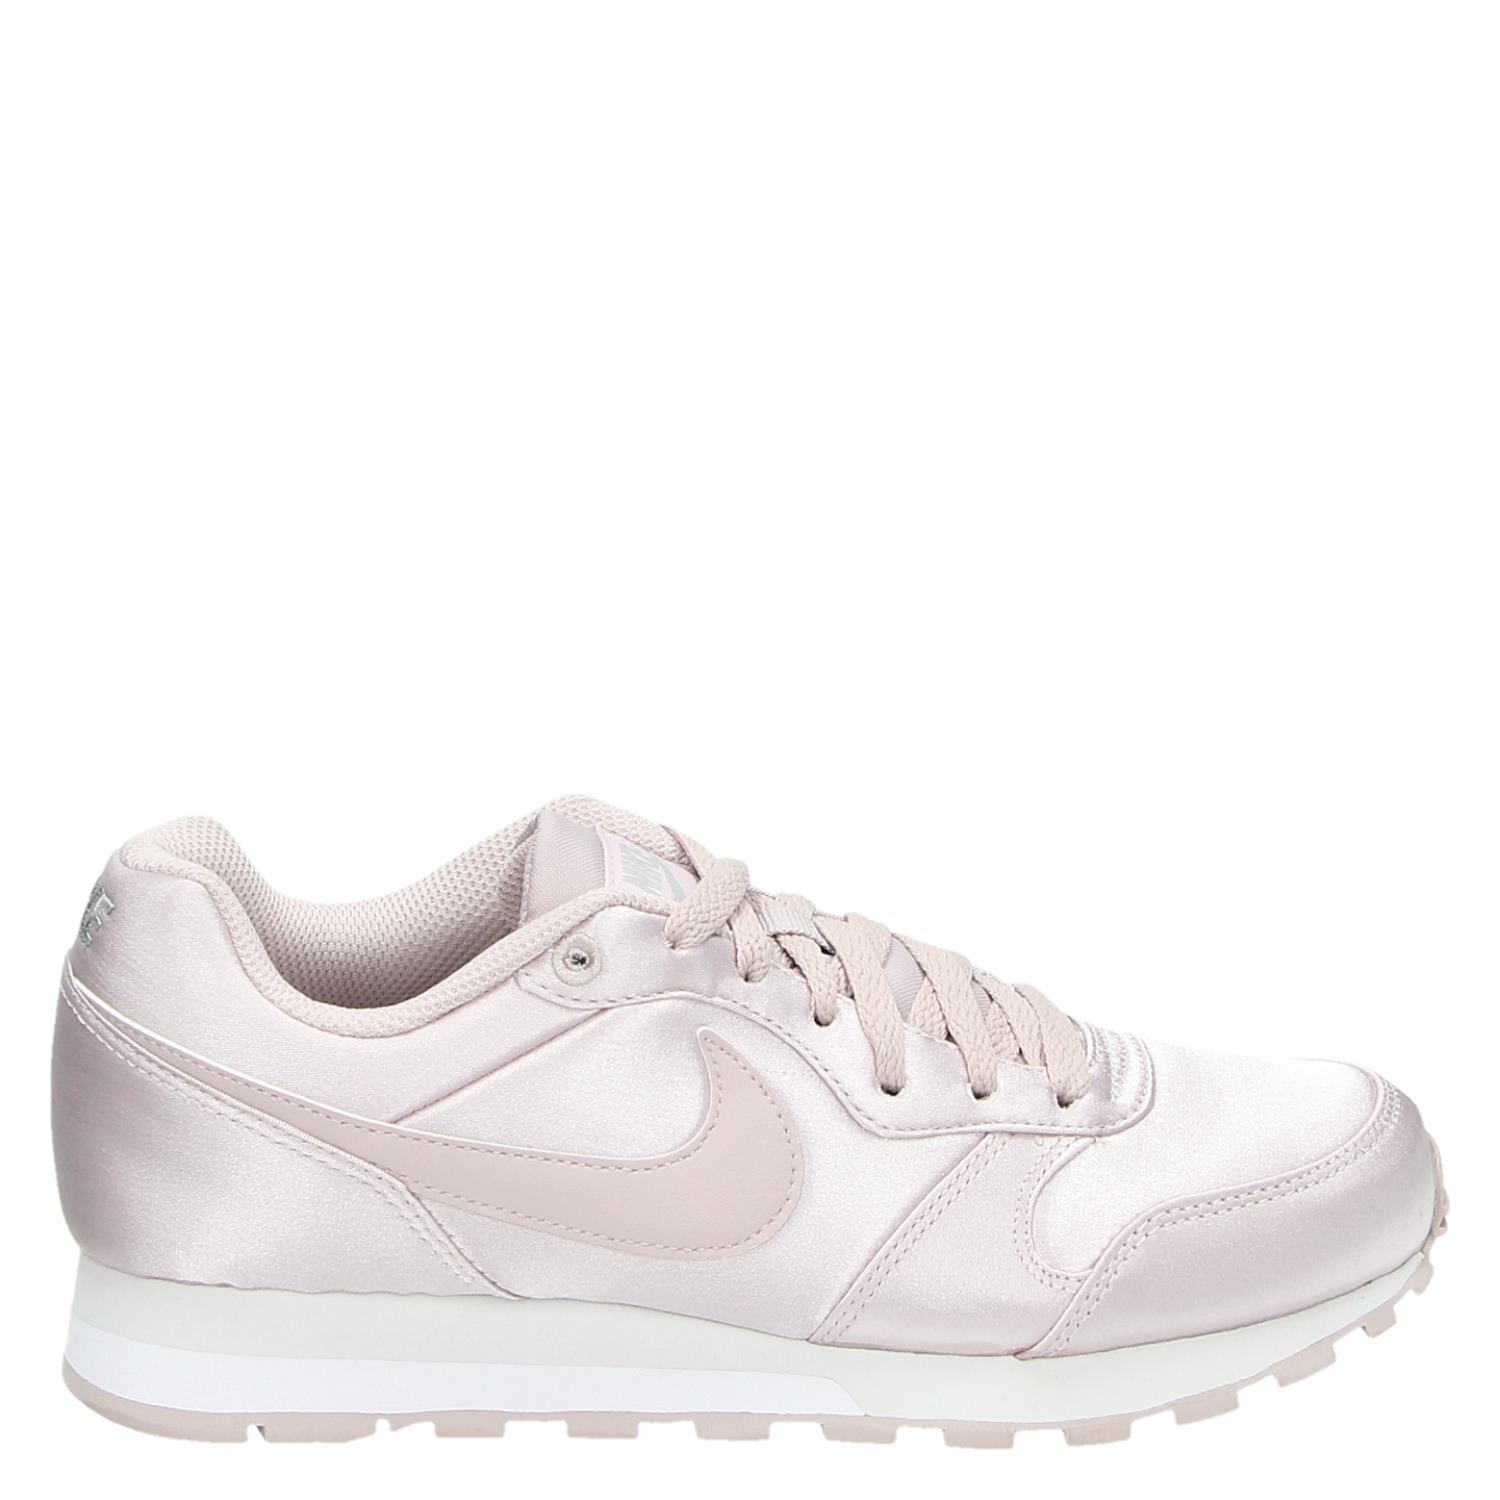 e448ddff1b4 Nike MD Runner 2 dames lage sneakers. Previous